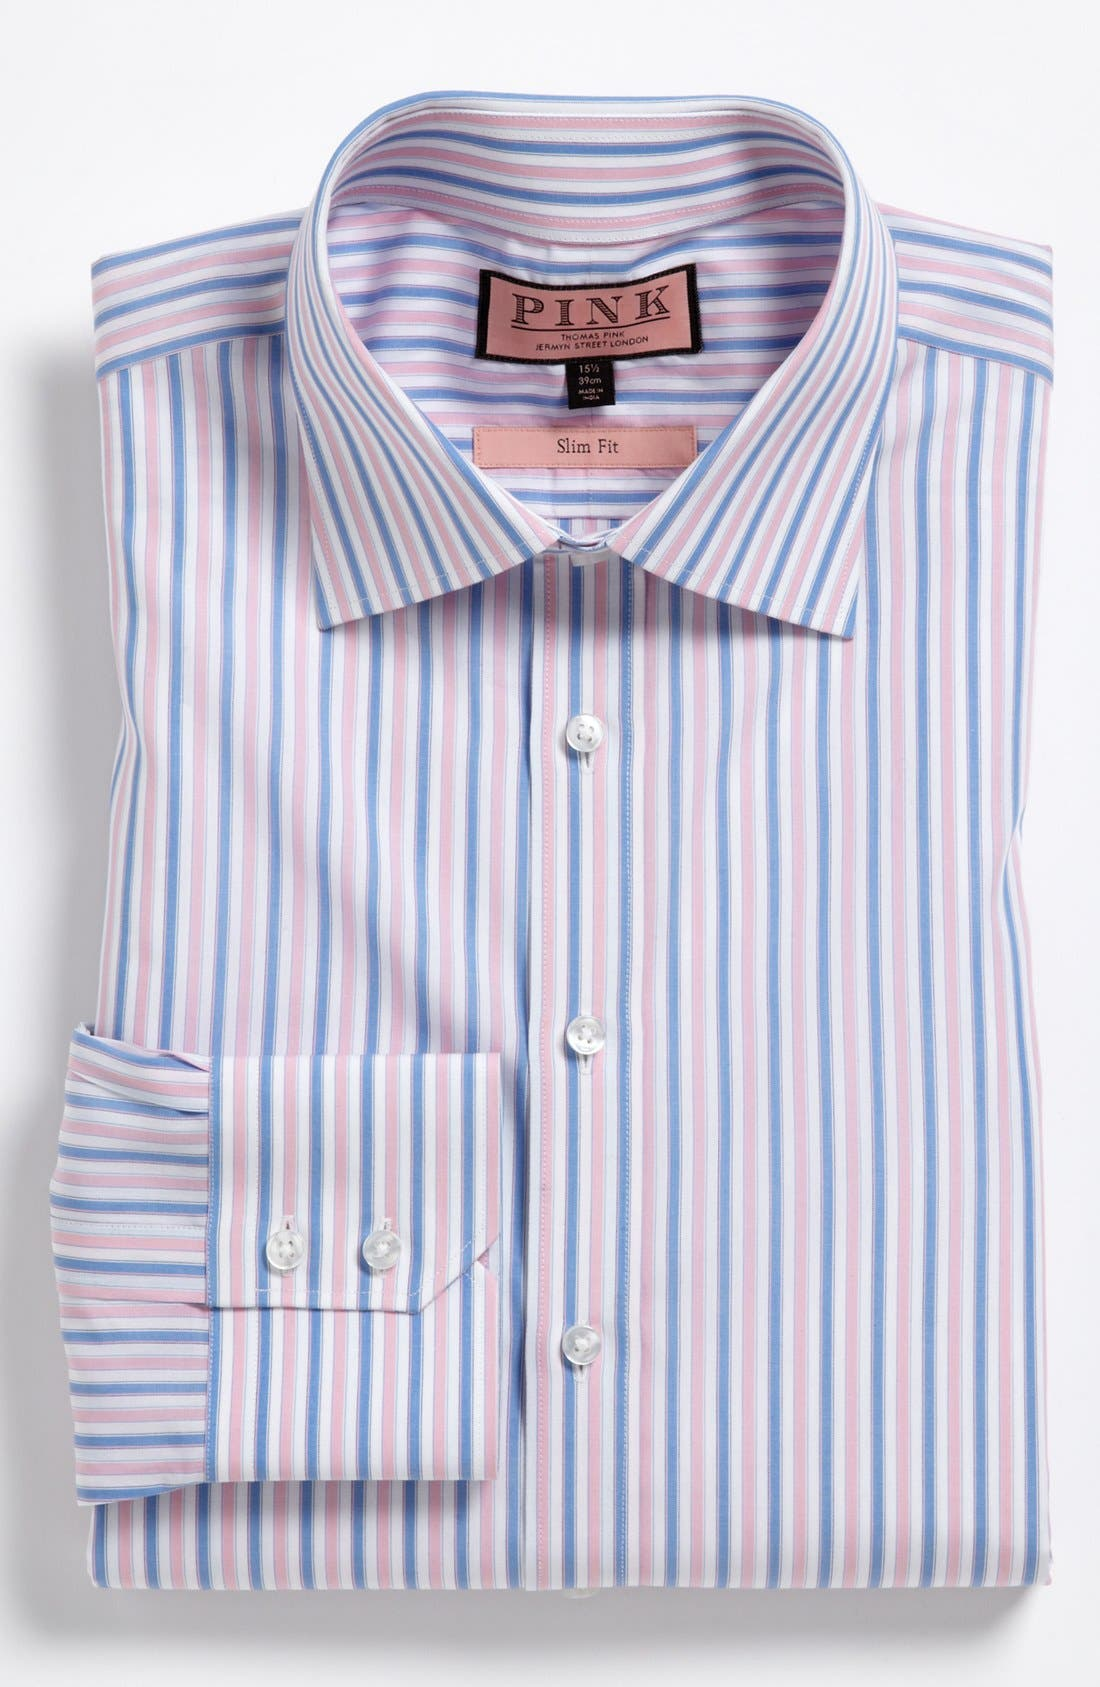 Alternate Image 1 Selected - Thomas Pink Slim Fit Dress Shirt